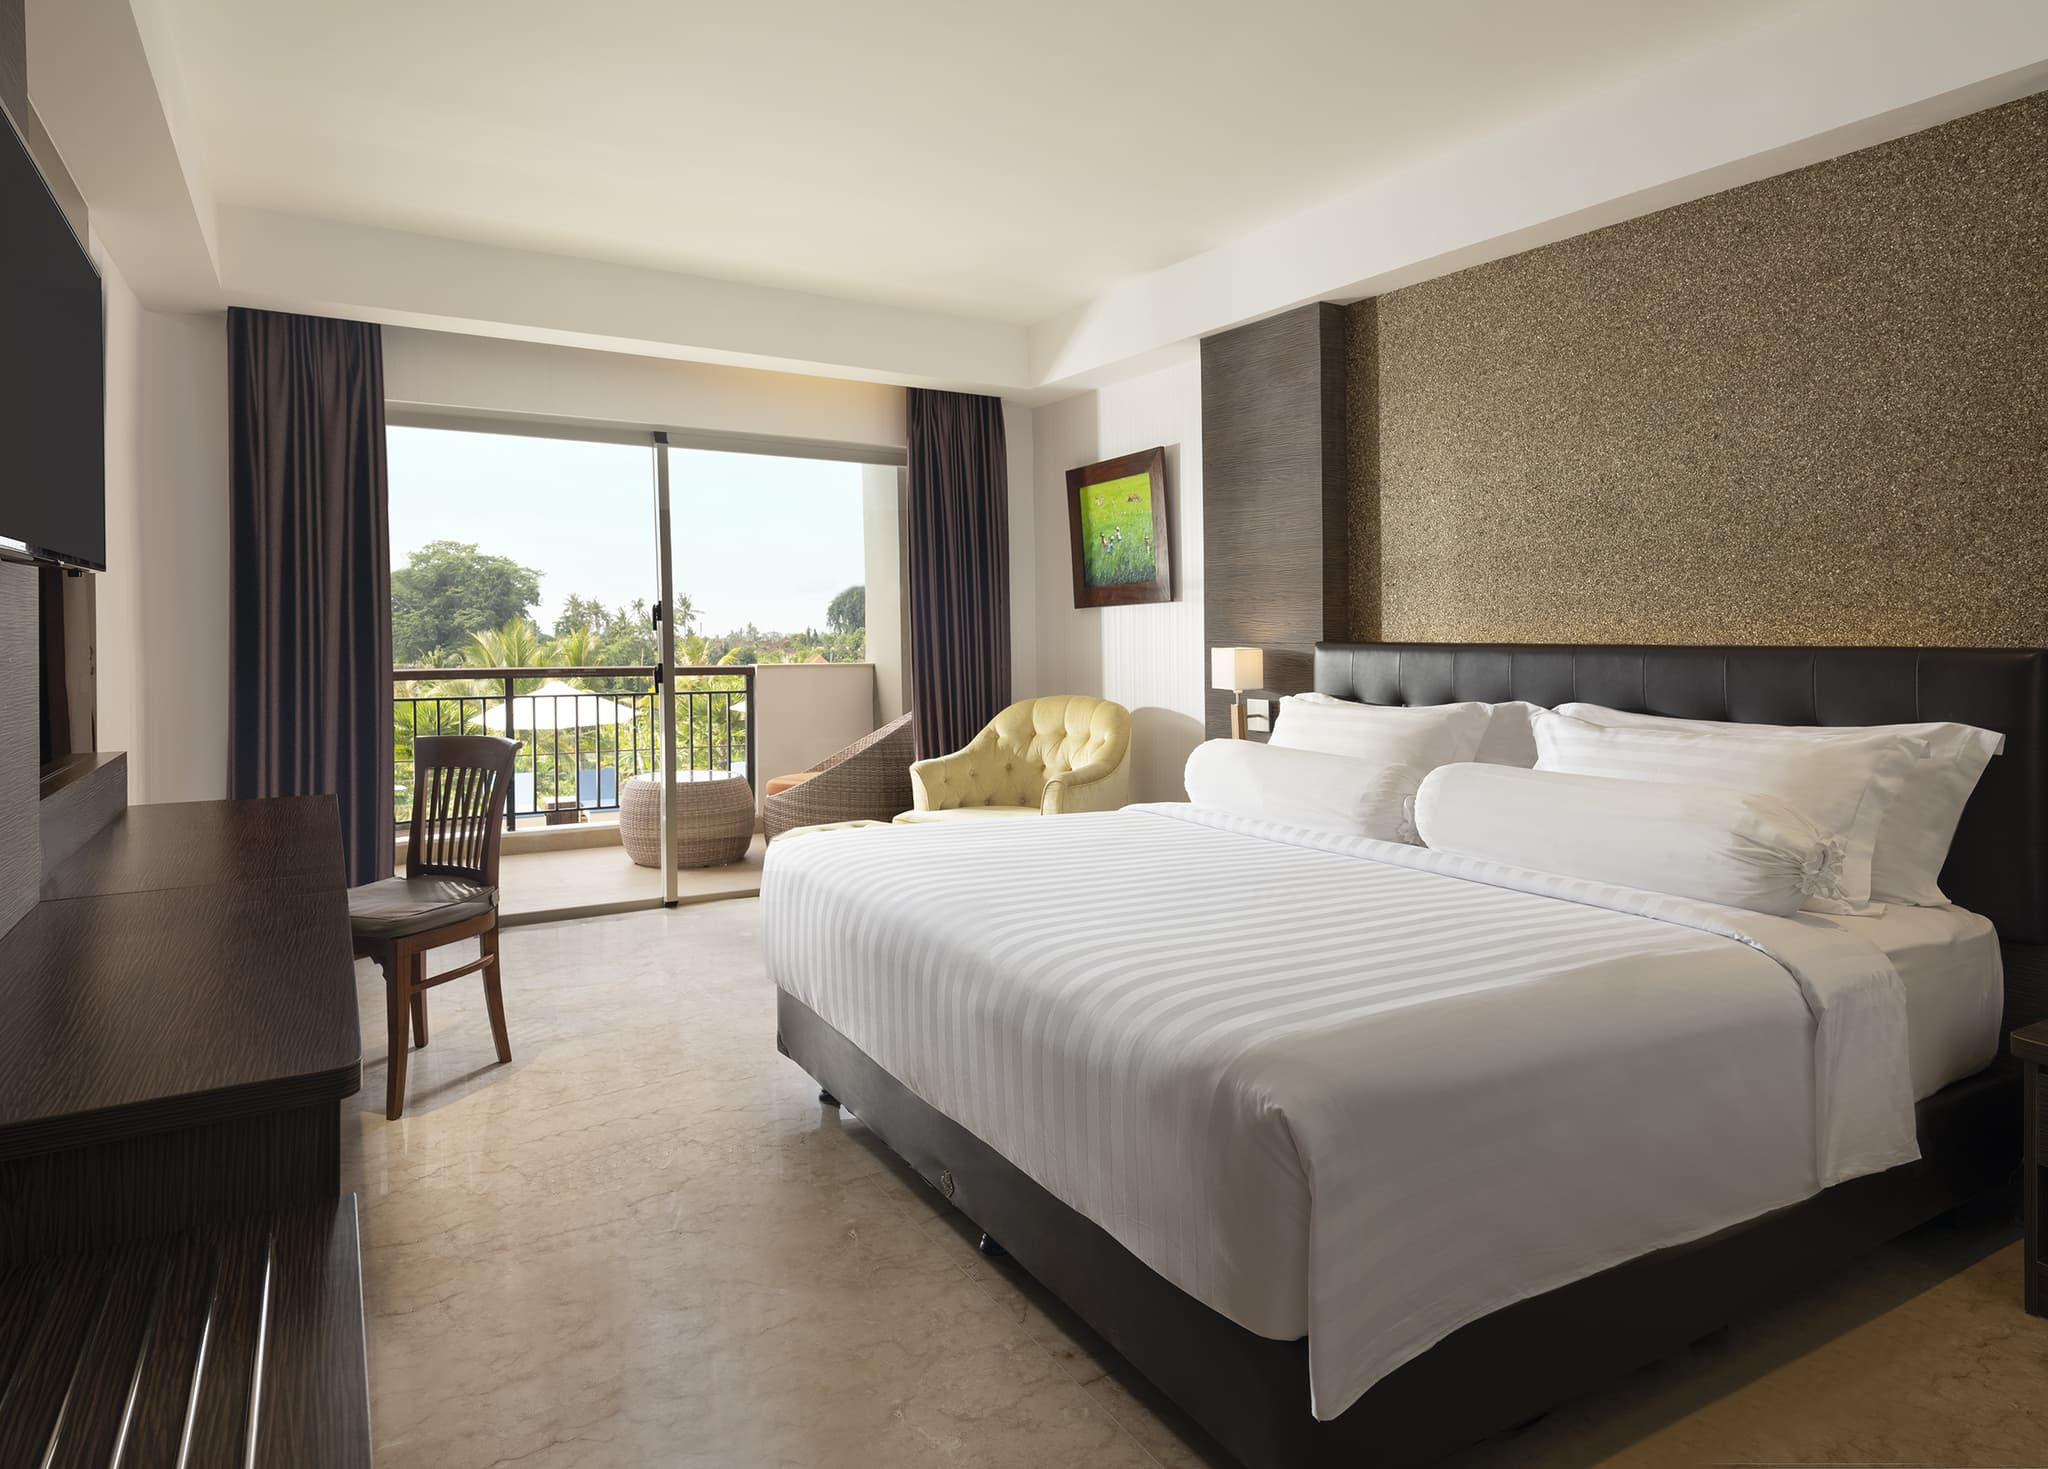 Sthala Ubud Bali Room Voucher - Di Indonesia Aja Voucher at Deluxe Room with Balcony at Sthala, a Tribute Portfolio Hotel, Ubud Bali by Marriott International